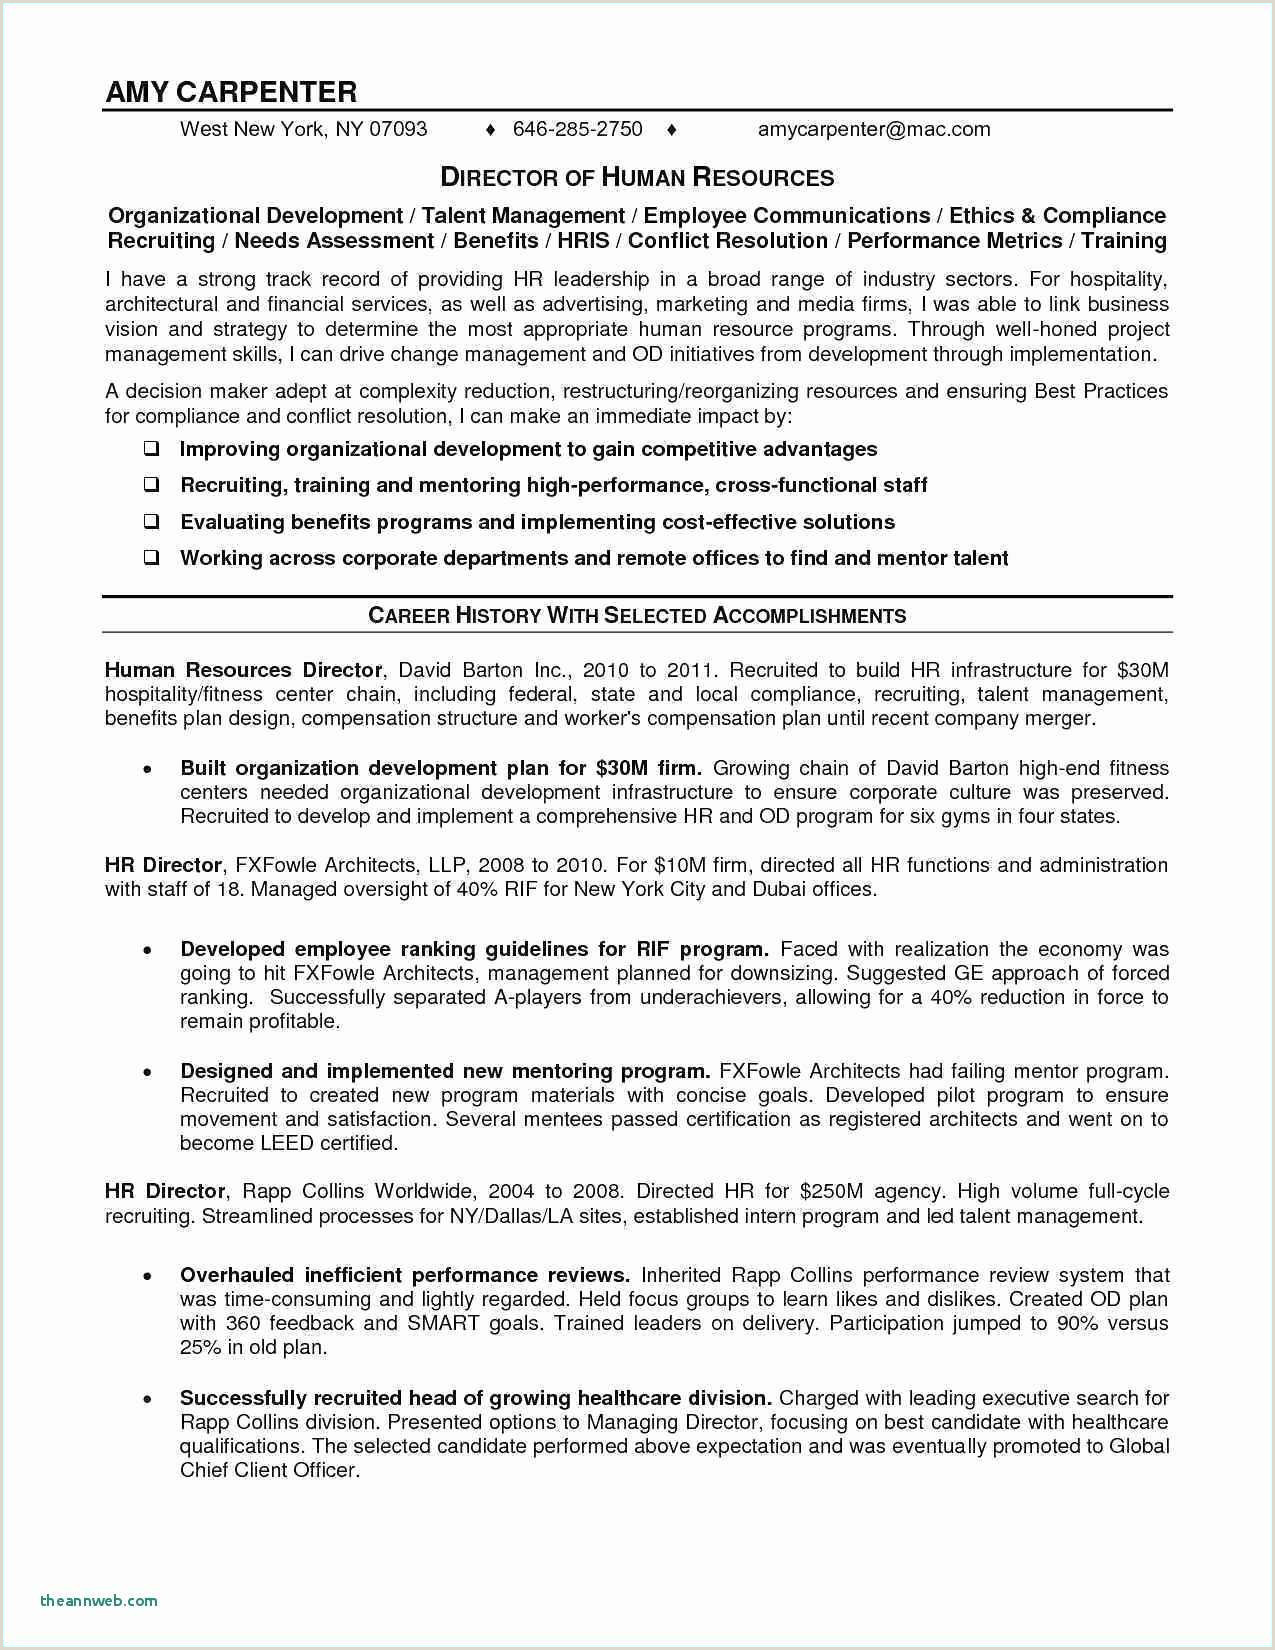 Cover Letter Examples for Medical assistant Free Basic Cover Letter Examples